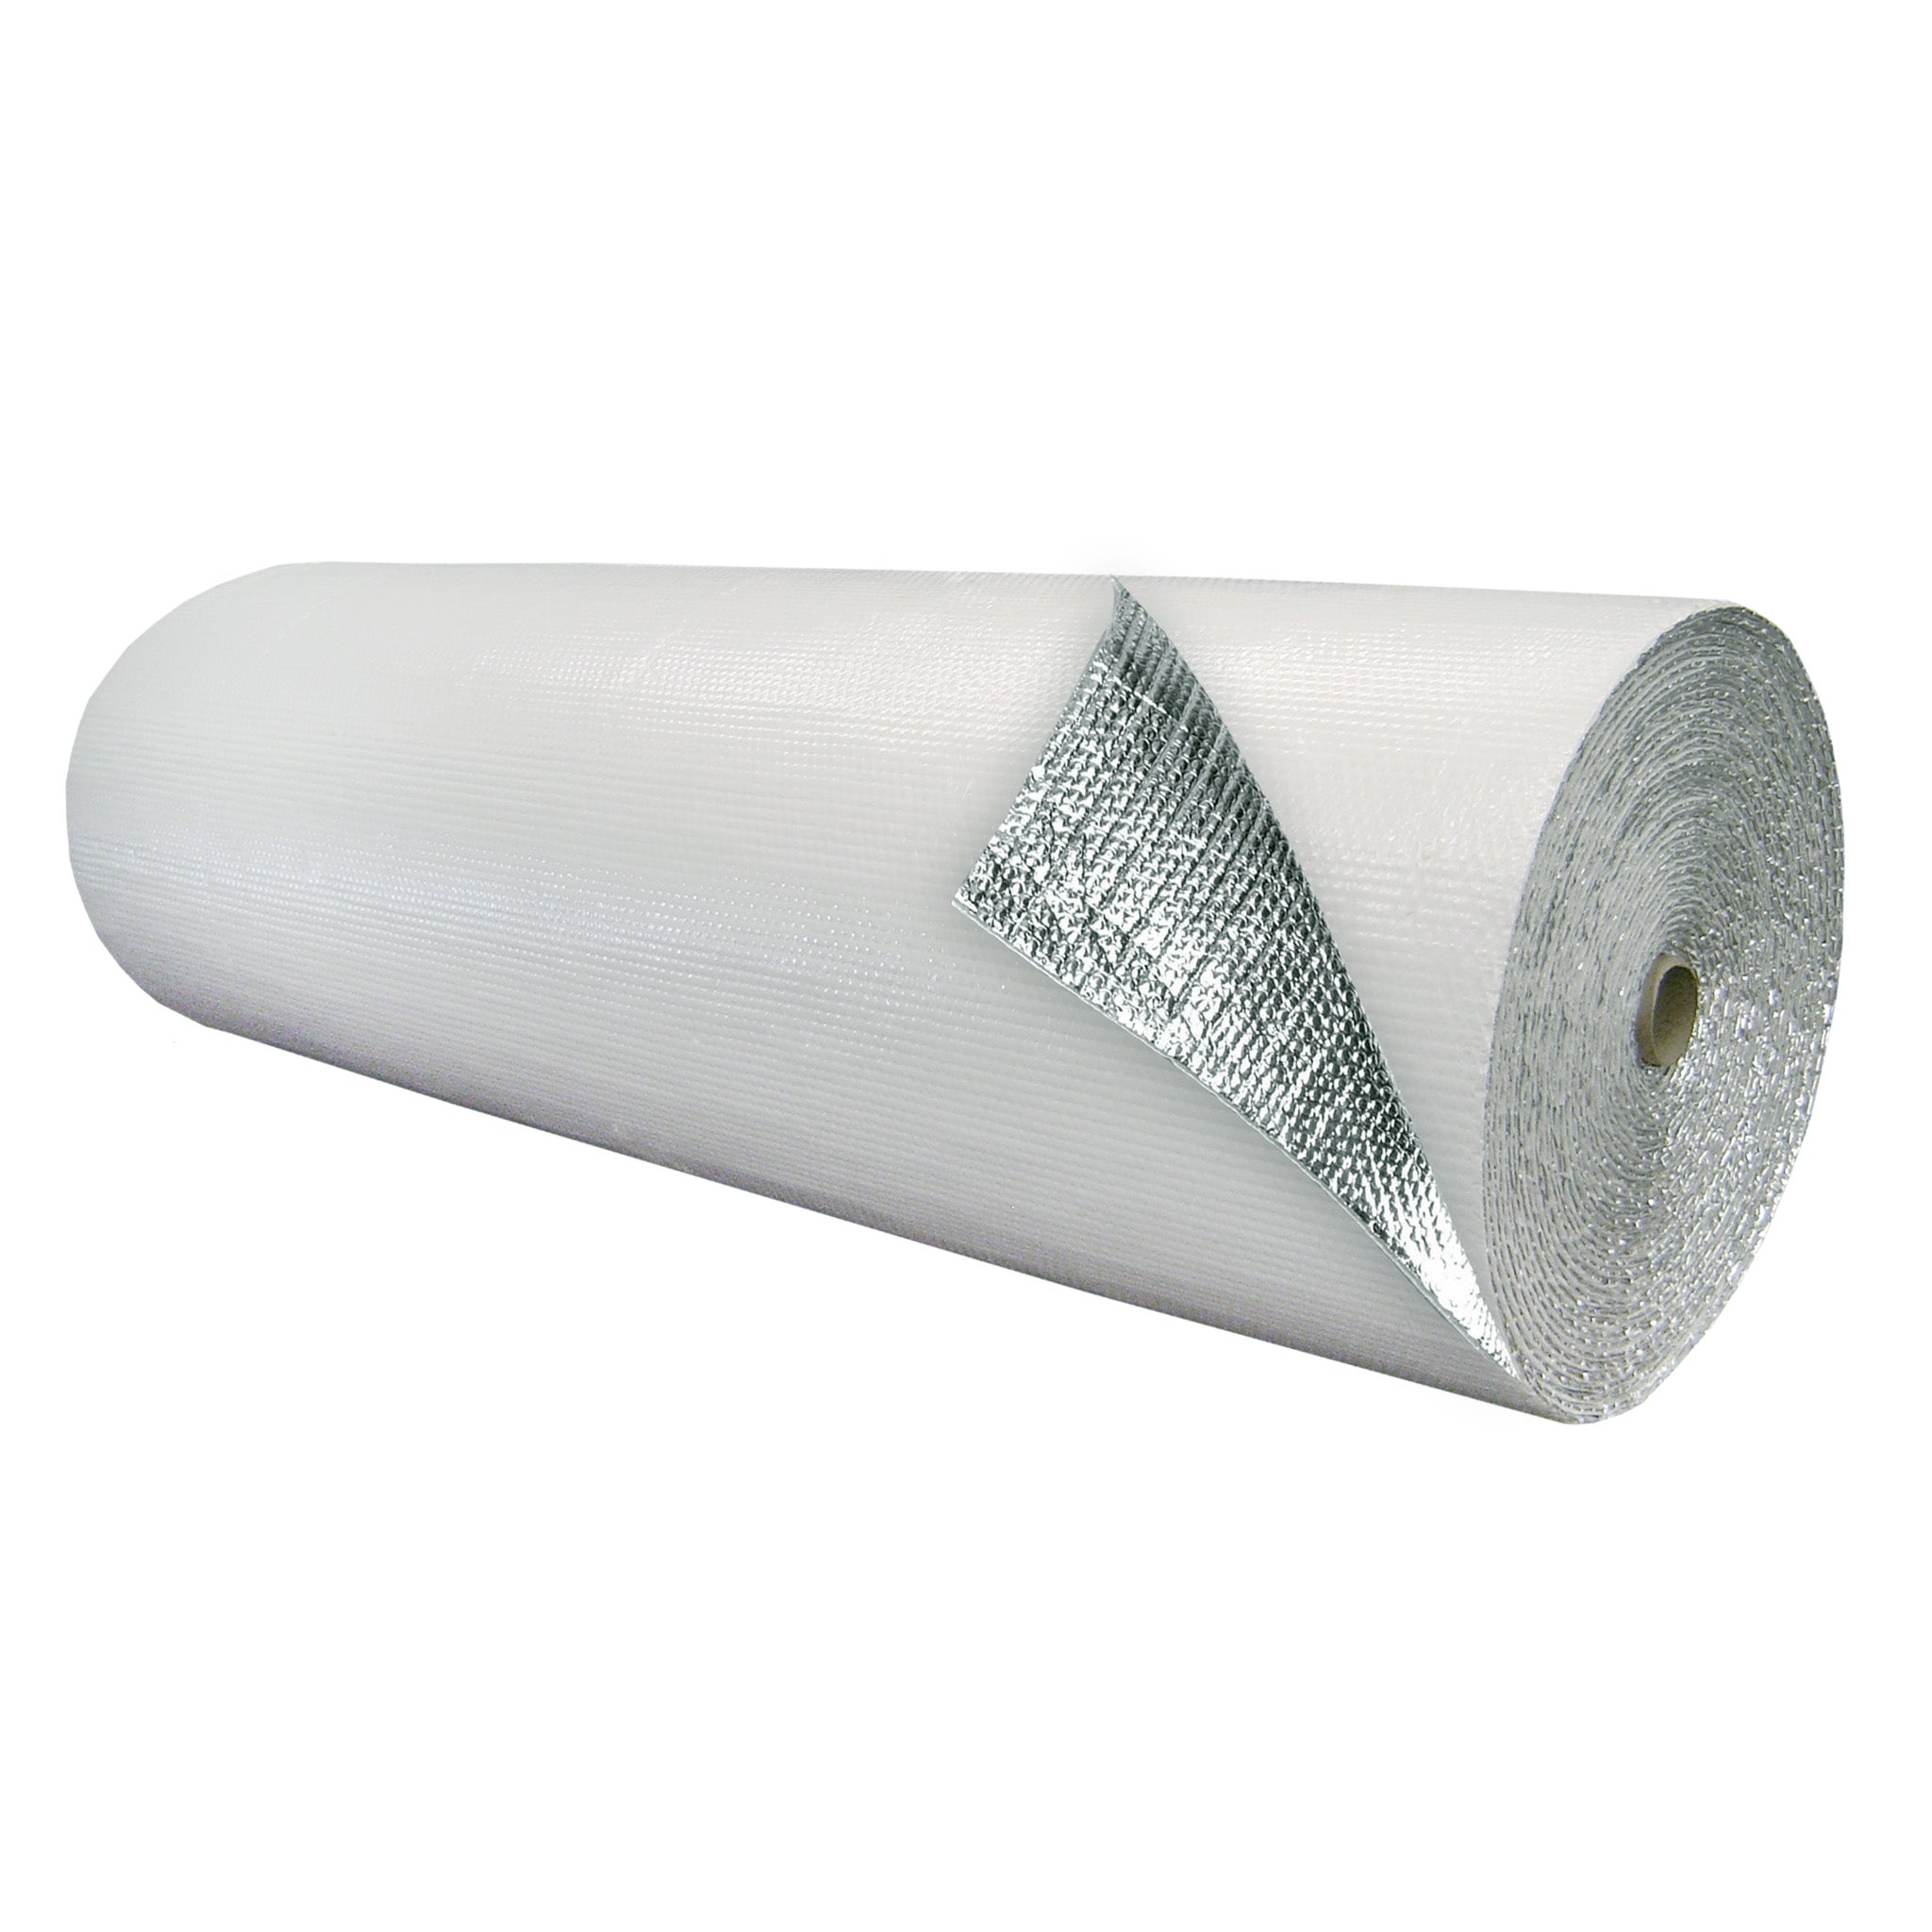 Double Bubble Insulation White_Foil 6 foot X 125 foot 750 sq ft